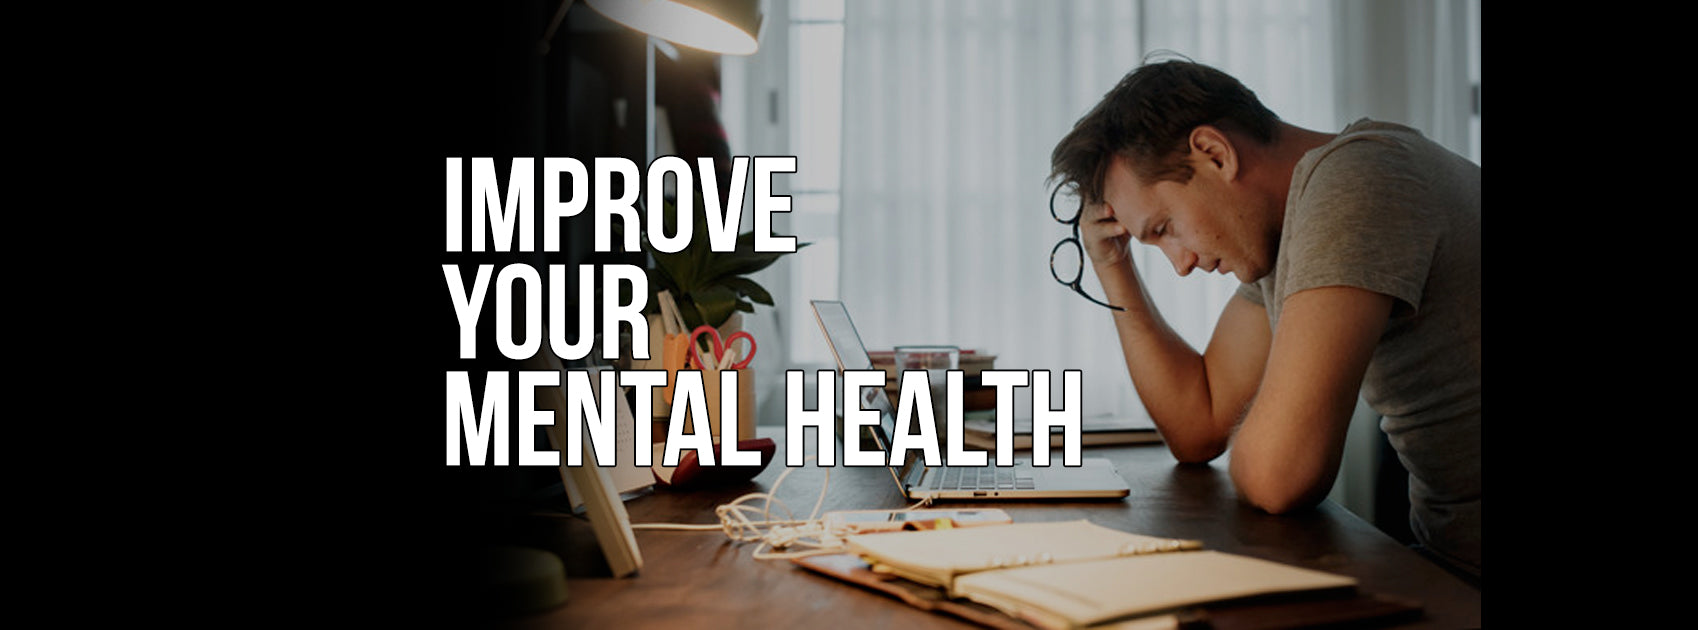 IMPROVE YOUR MENTAL HEALTH, IMPROVE YOUR QUALITY OF LIFE